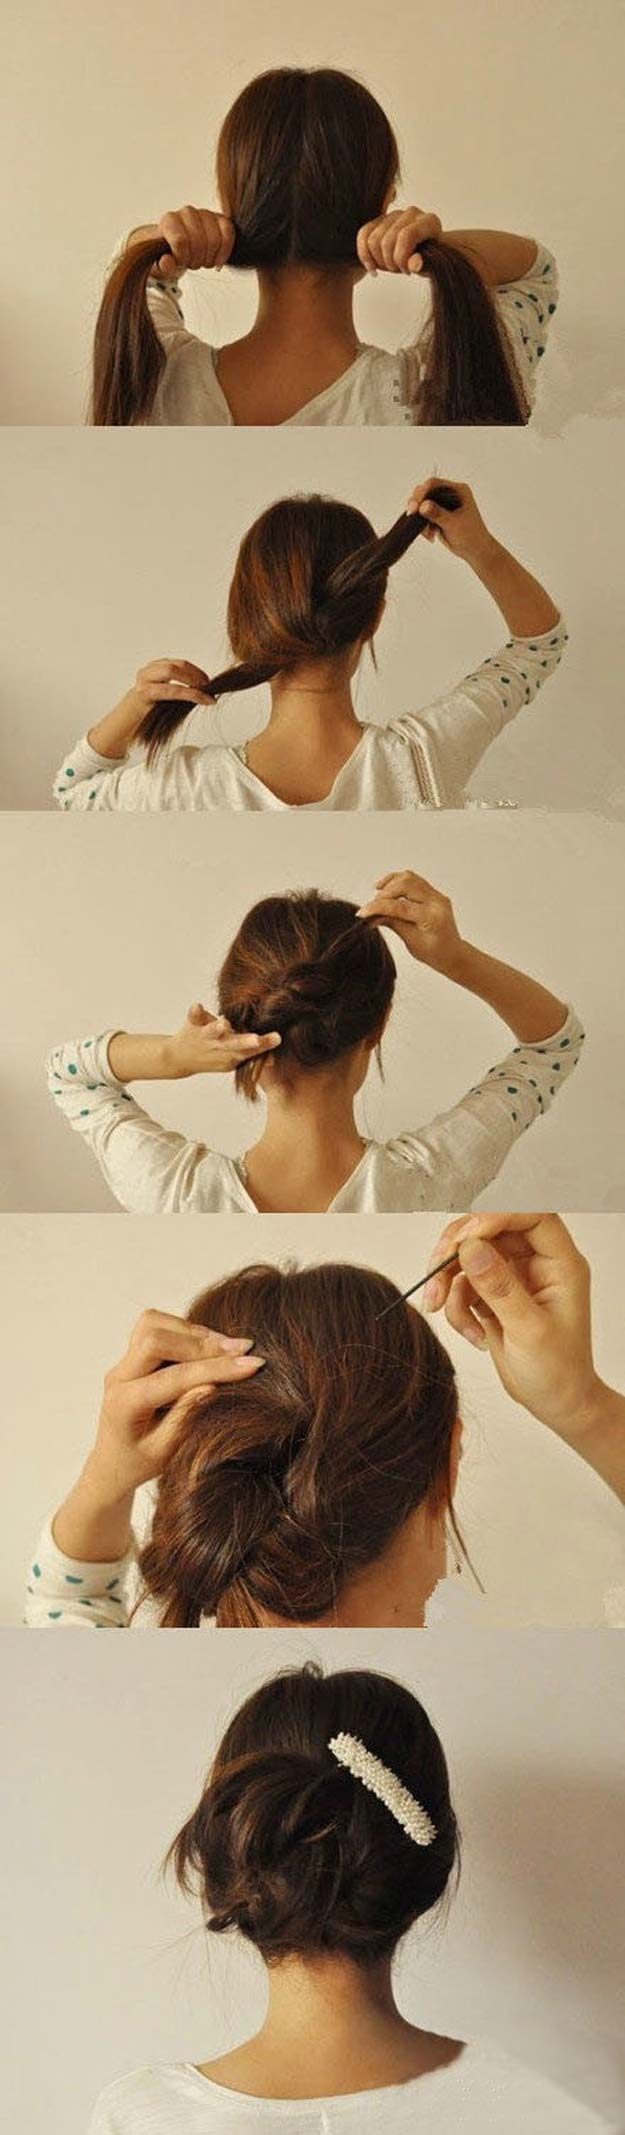 Best Hairstyles for Long Hair - Updo Hairstyle - Step by Step Tutorials for Easy Curls, Updo, Half Up, Braids and Lazy Girl Looks. Prom Ideas, Special Occasion Hair and Braiding Instructions for Teens, Teenagers and Adults, Women and Girls http://diyprojectsforteens.com/best-hairstyles-long-hair